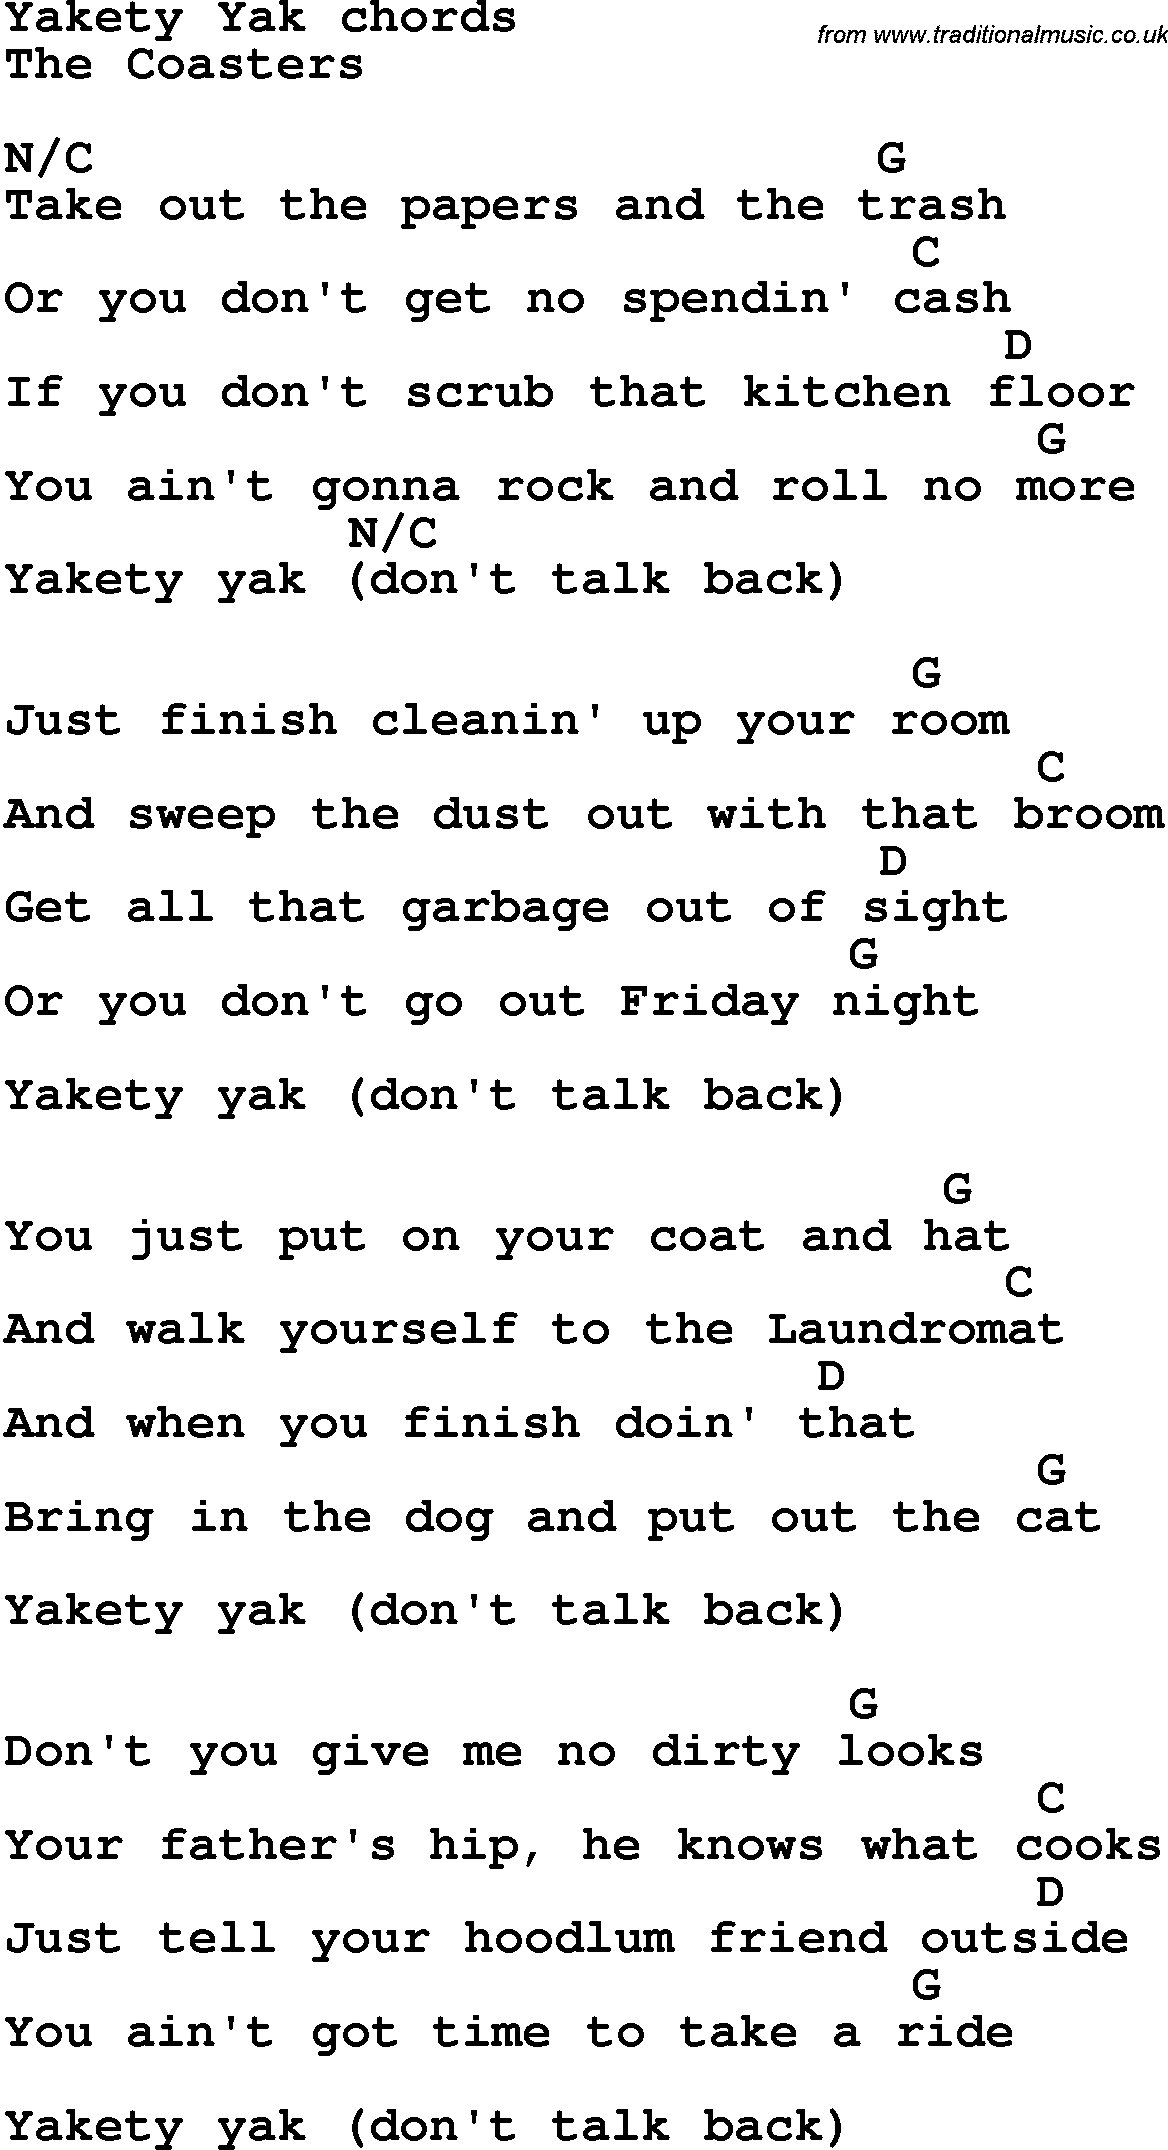 Song Lyrics With Guitar Chords For Yakety Yak